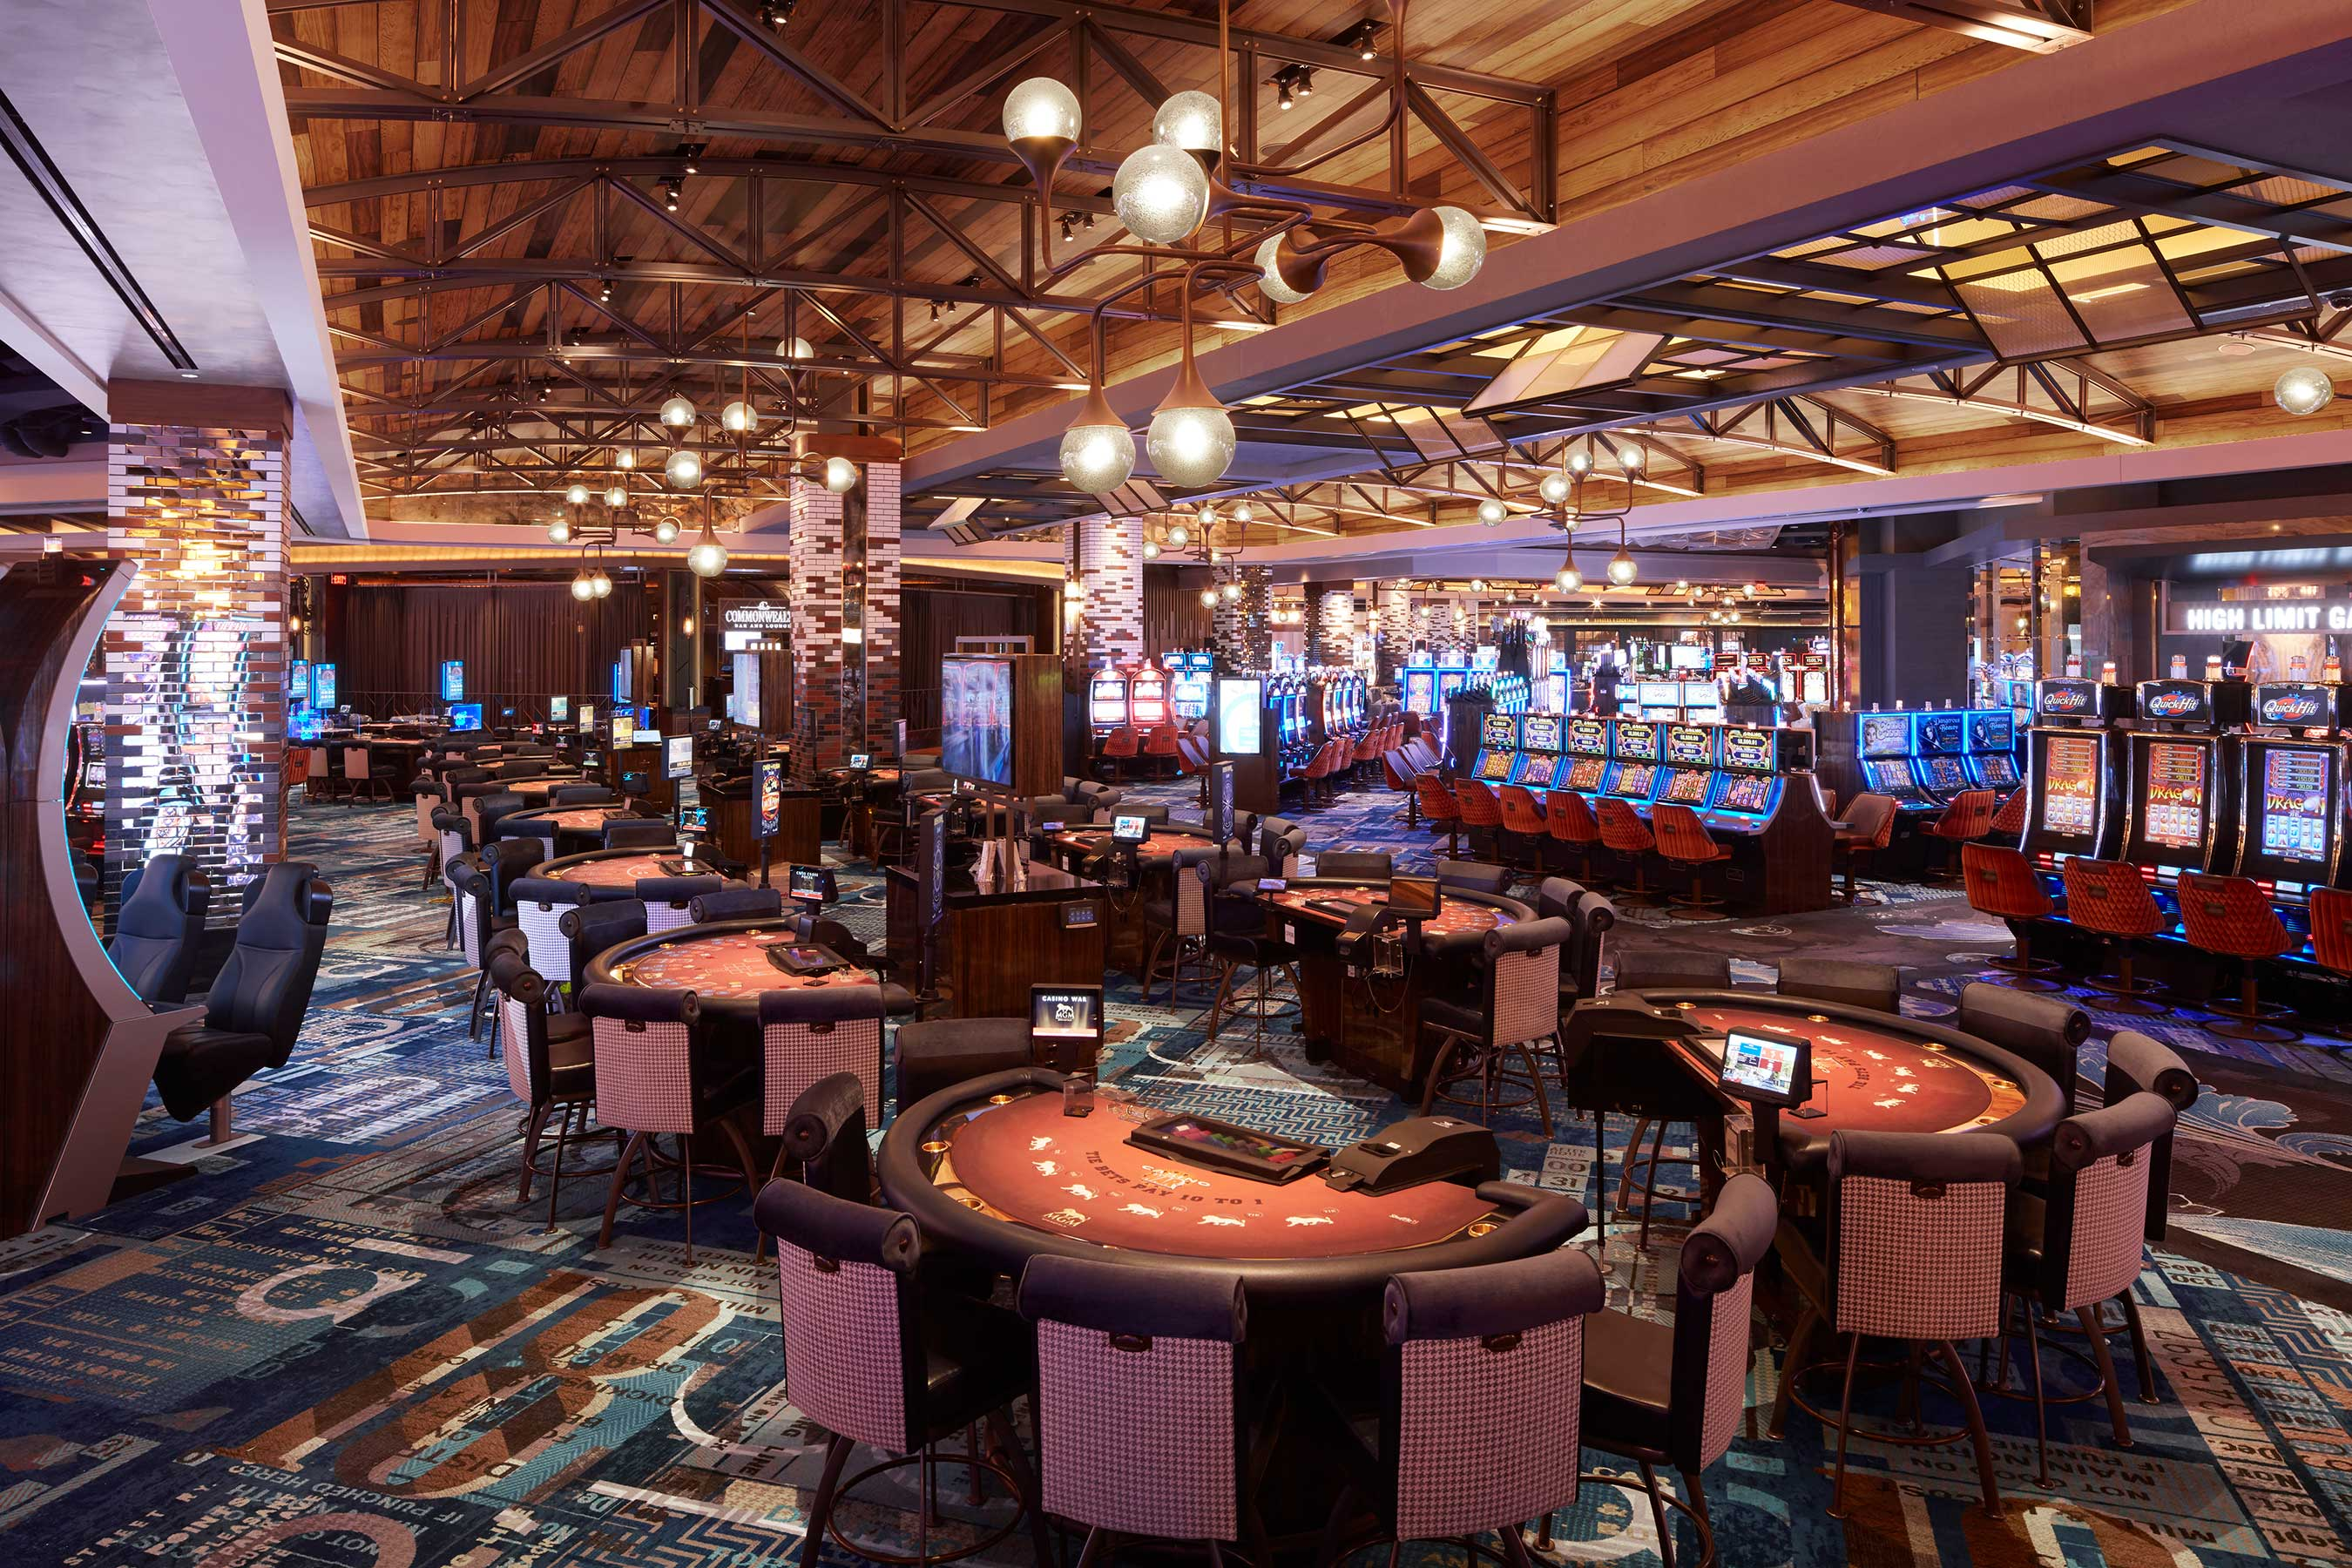 The casino at MGM Springfield offers 2,550 slots, 120 table games, a high-limit area and poker room.